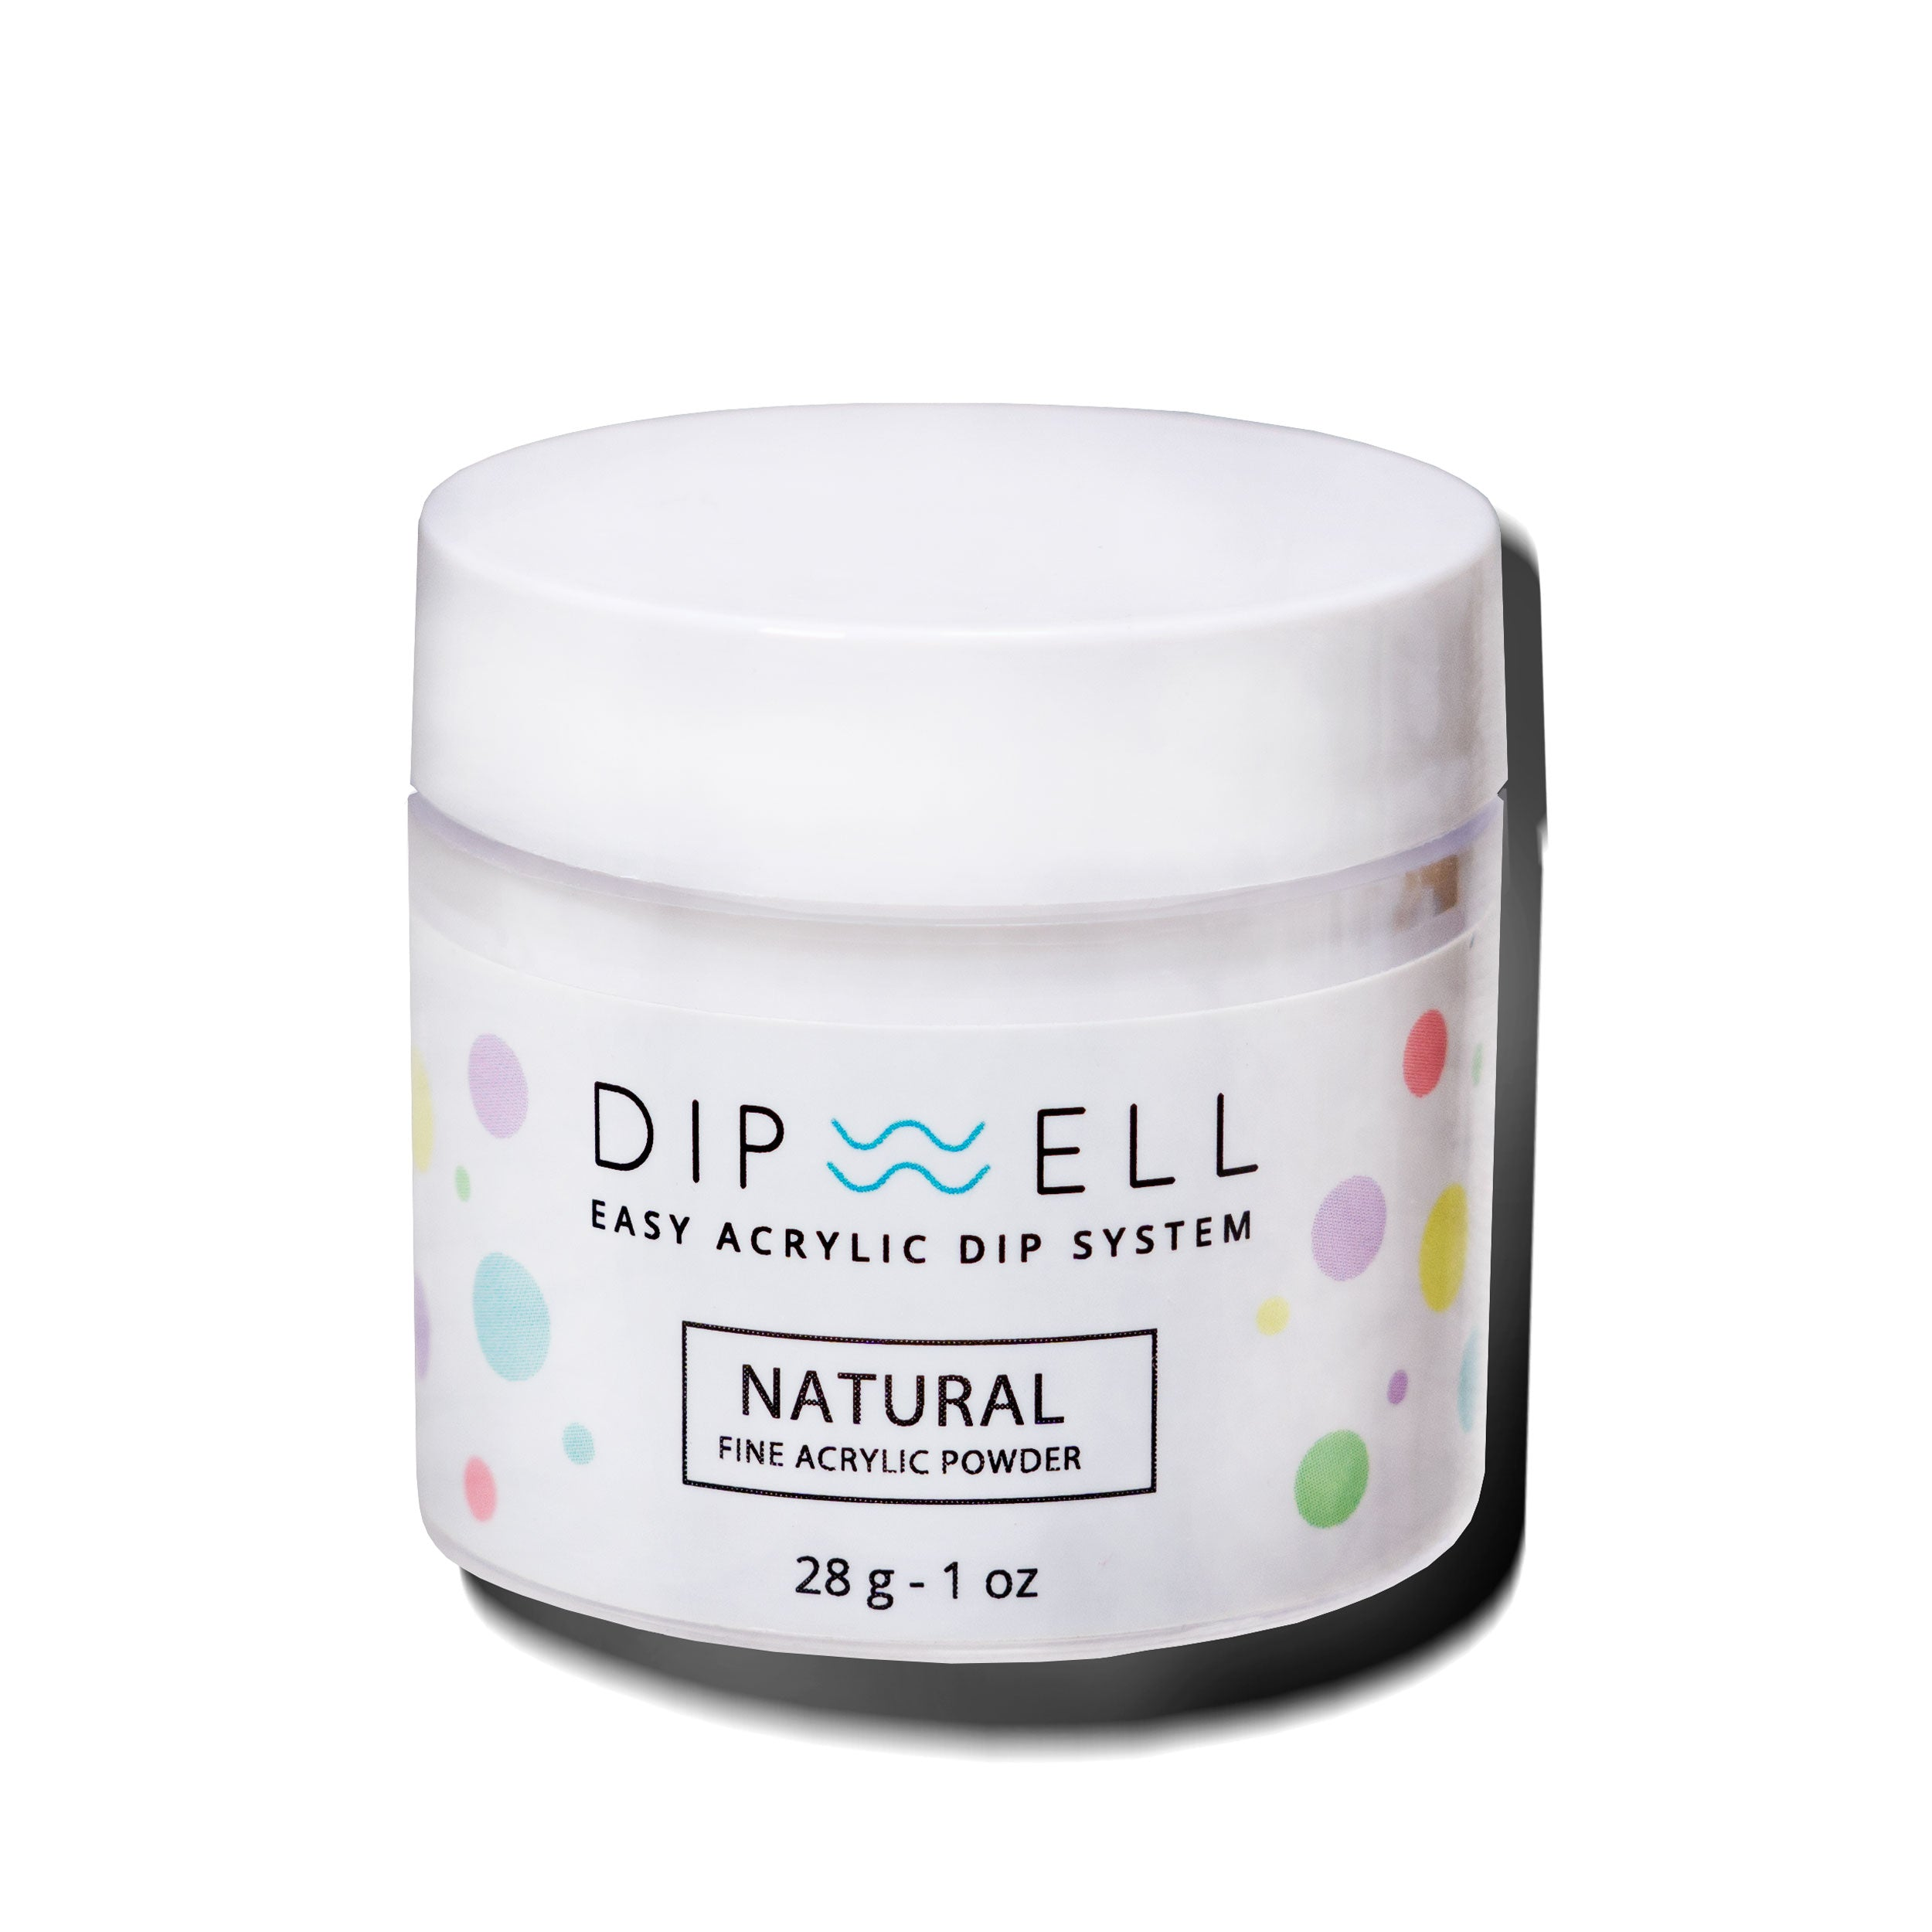 Natural, Dip Nail Powder